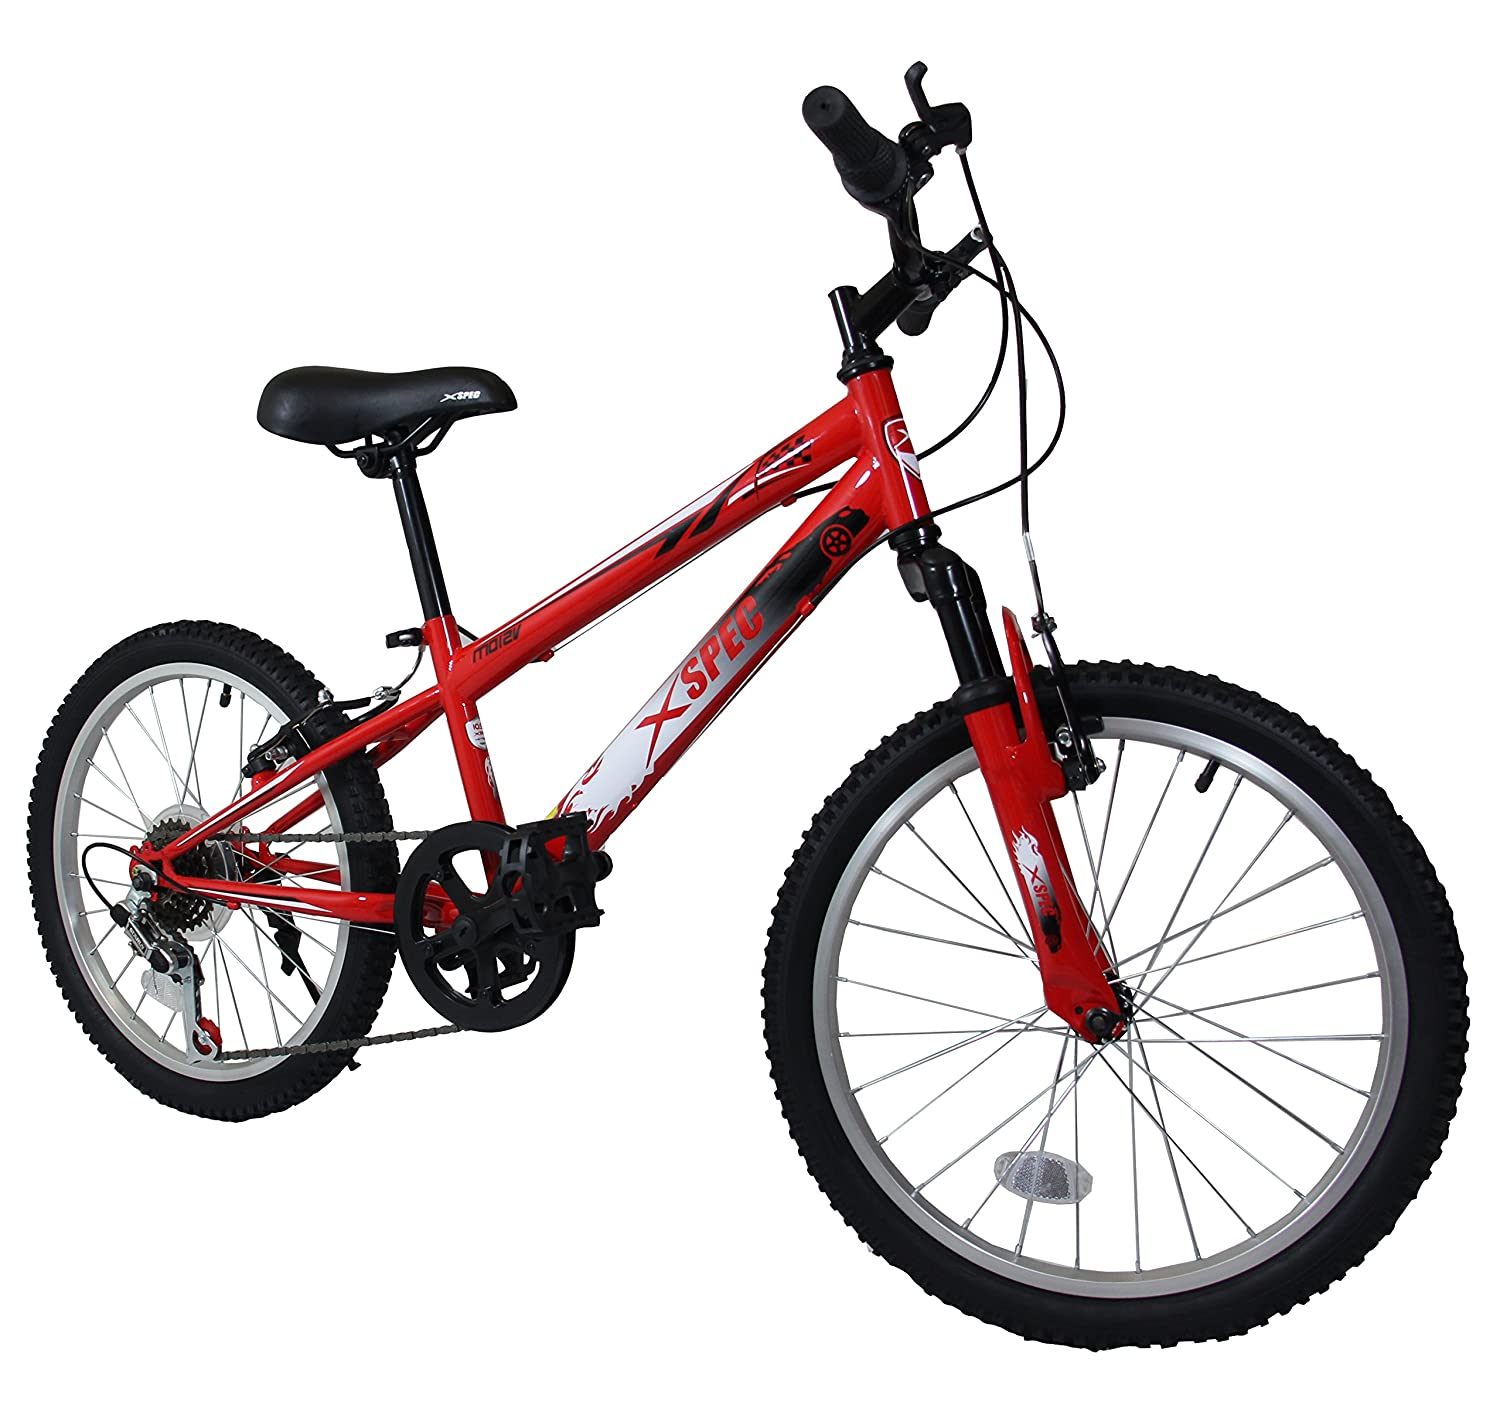 f24bebb36fc5 The Ultimate Buying Guide for Your Kid s Mountain Bike - Single Spoke